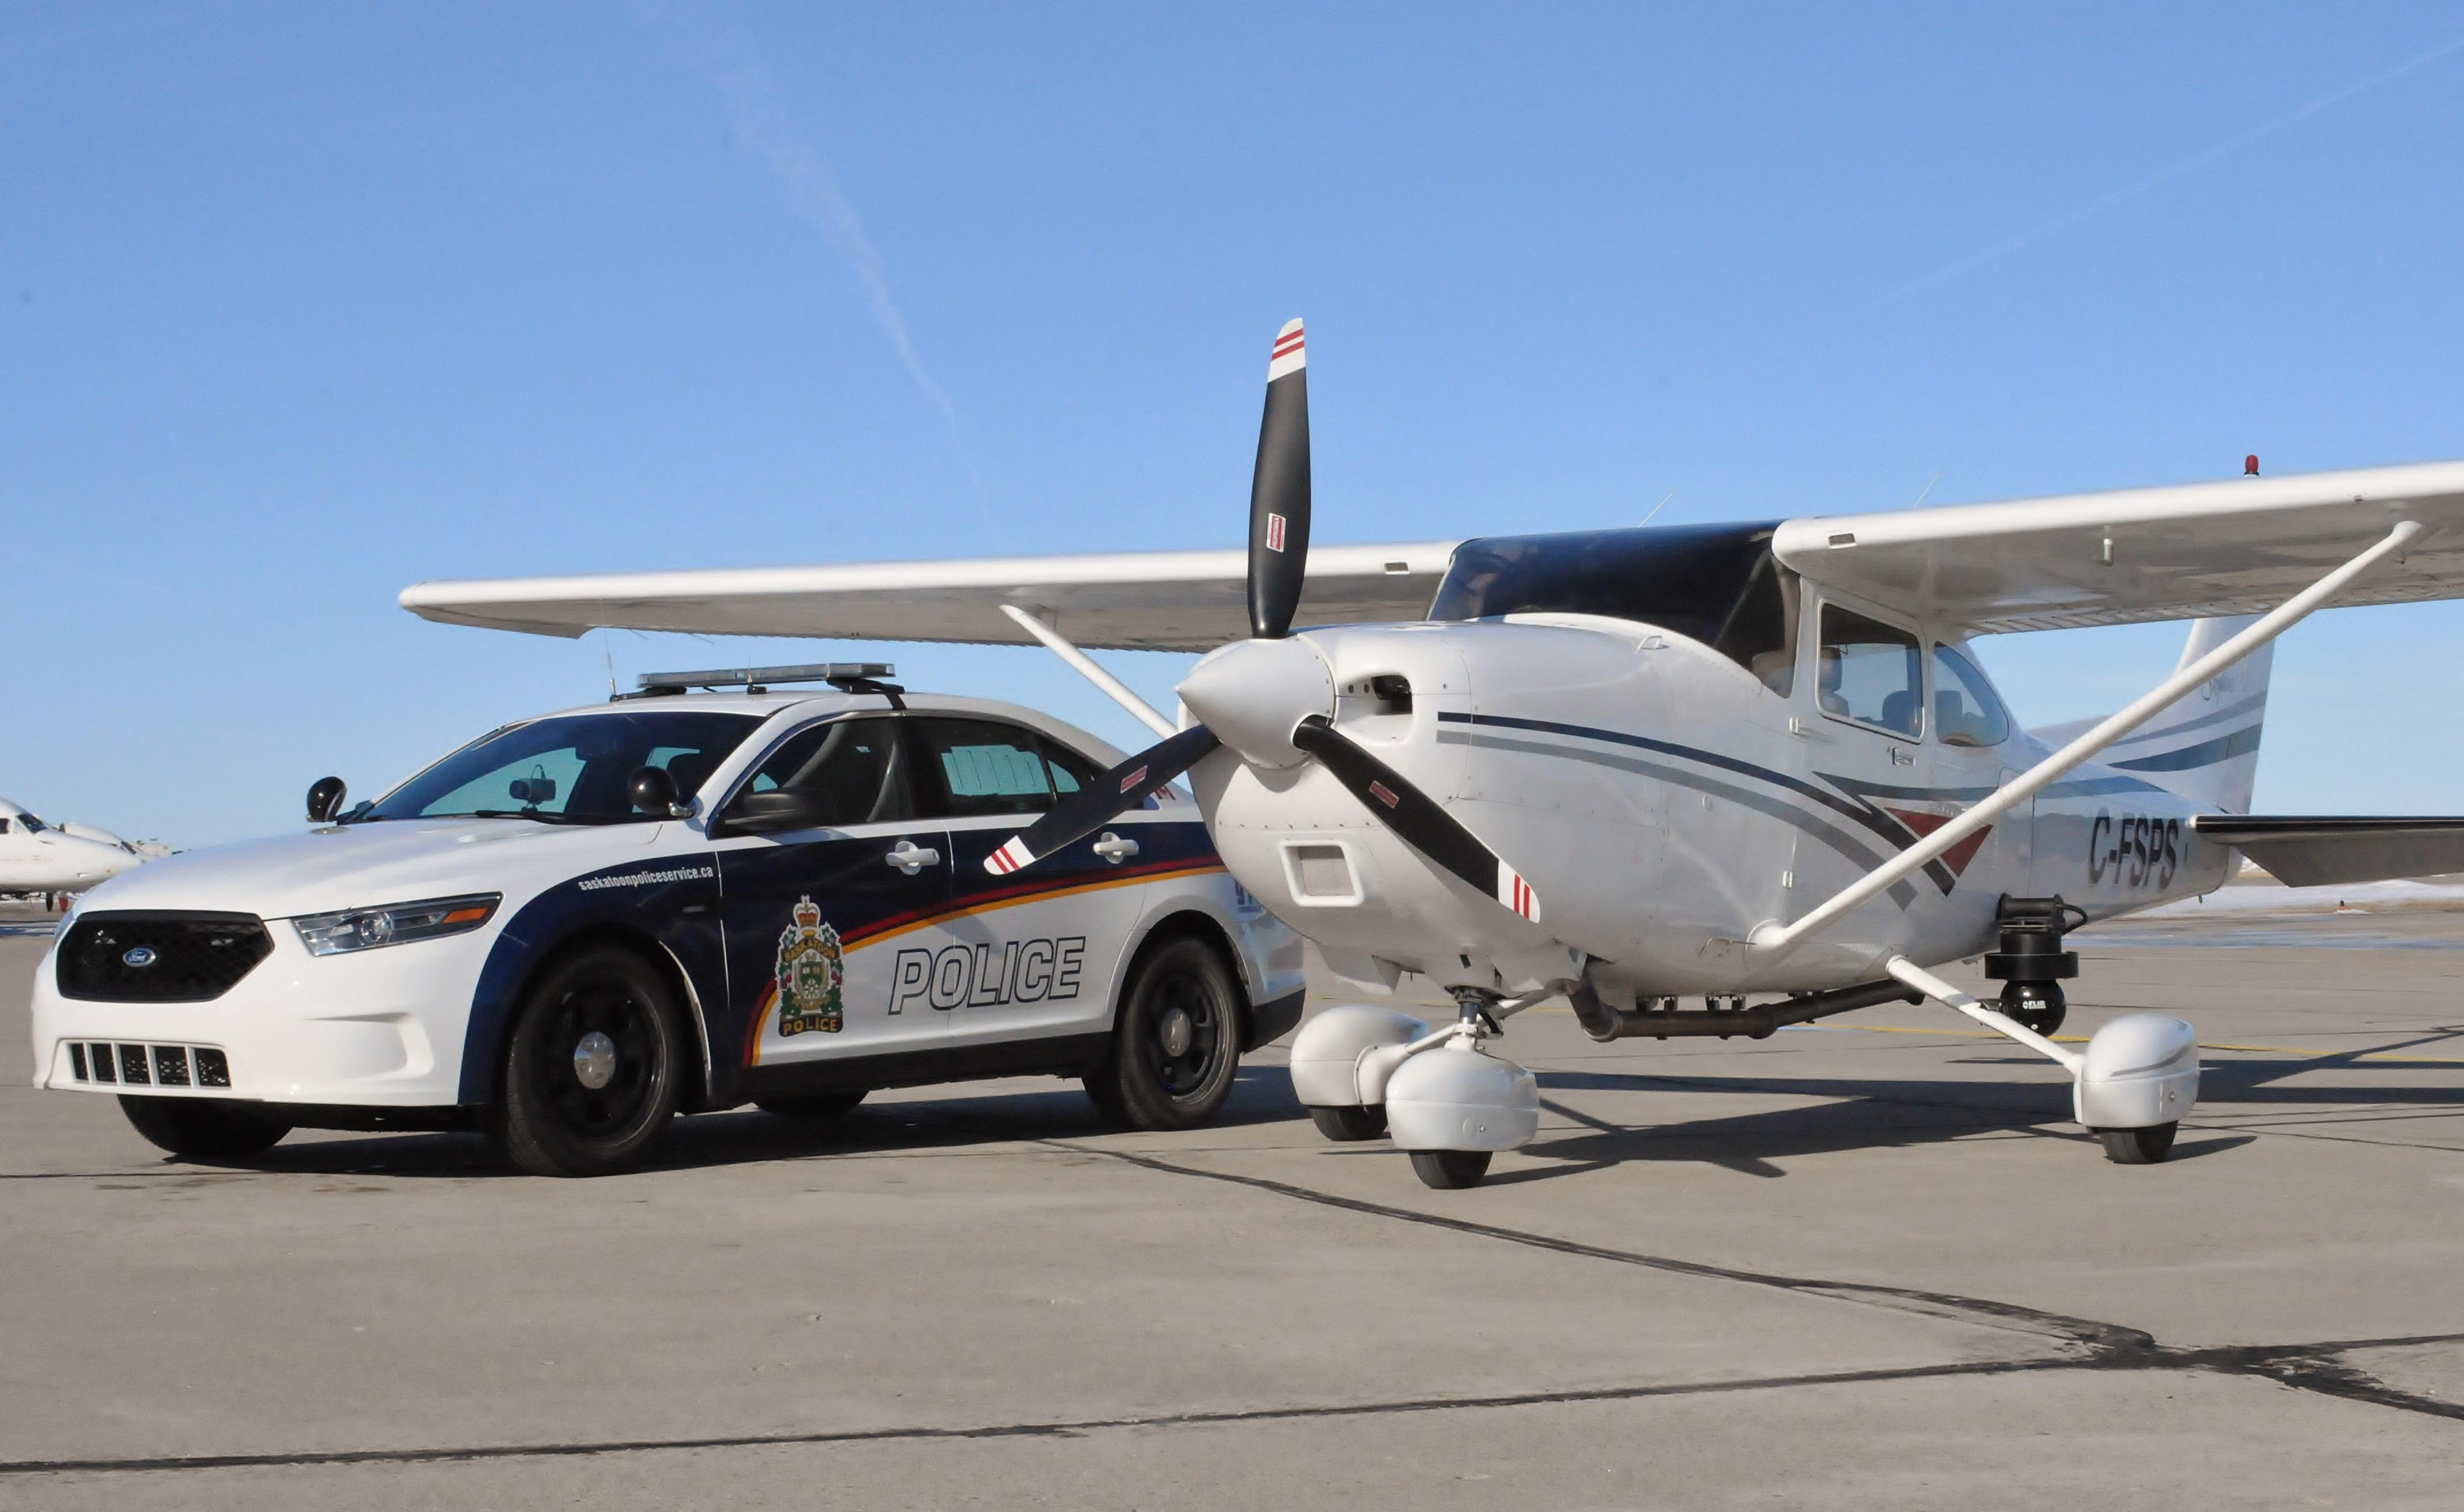 Airbus Iphone Wallpaper 1998 Cessna 182s Skylane C Fsps With A Ford Police Car 4k